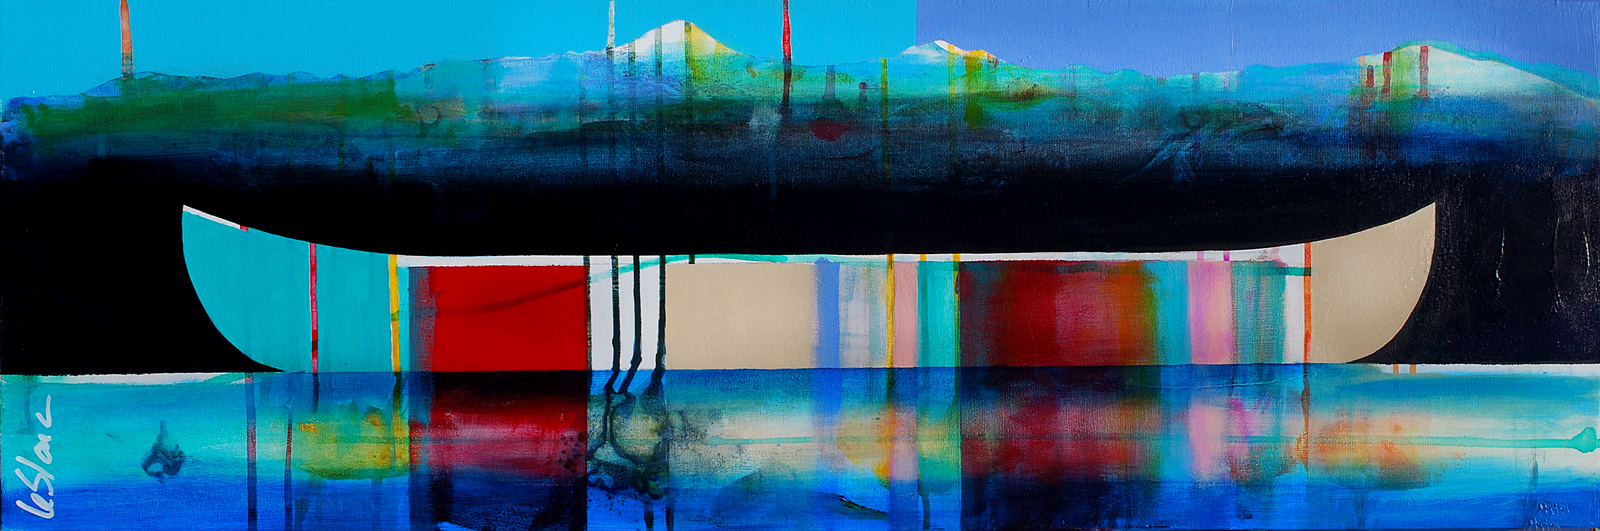 Sonate, mixed media canoe painting by Sylvain Leblanc | Effusion Art Gallery + Cast Glass Studio, Invermere BC